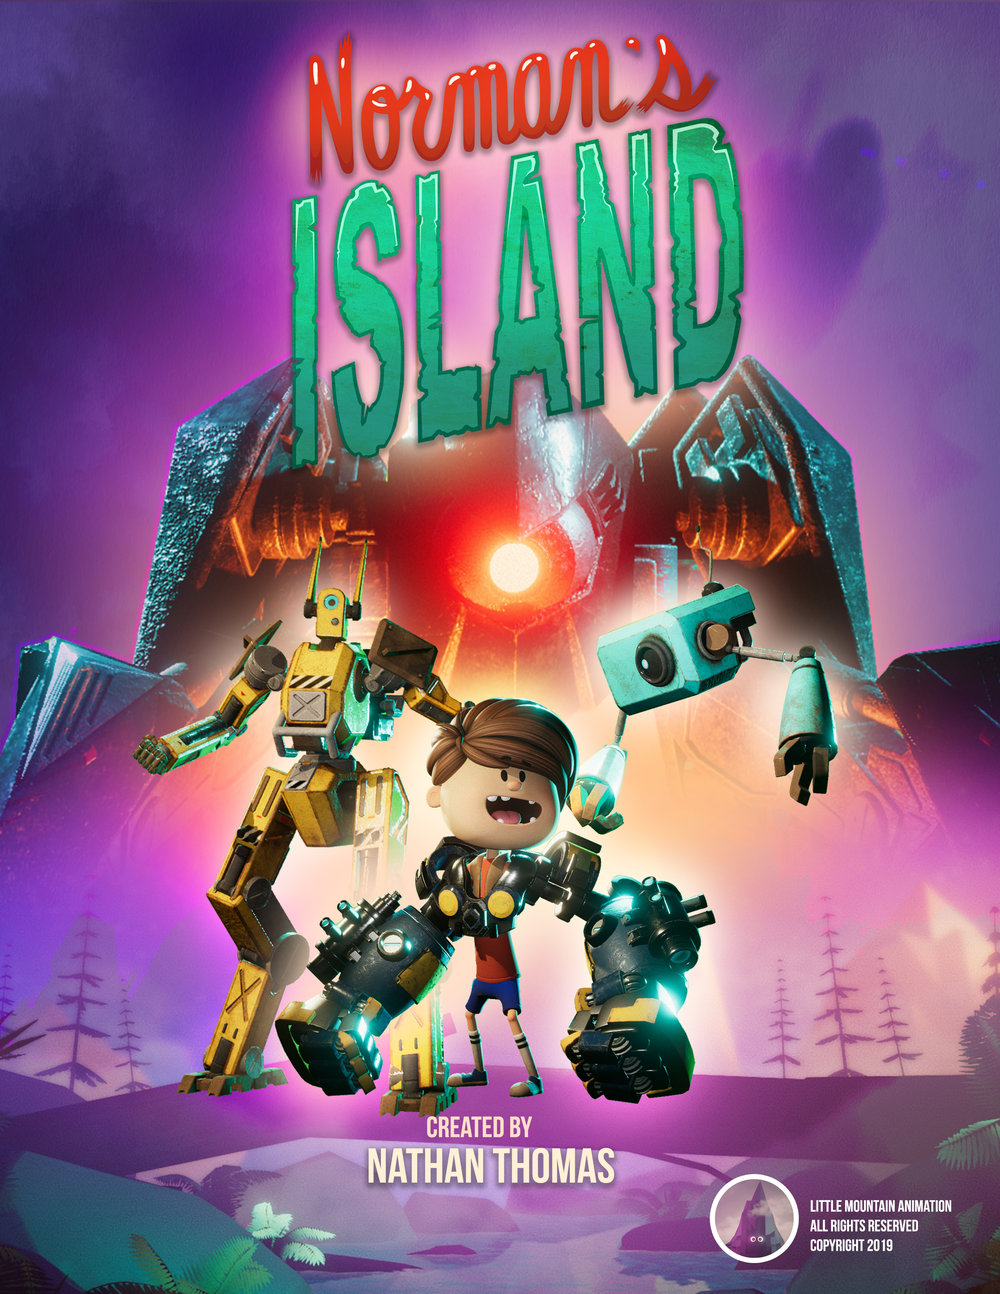 """Our Properties - We are currently developing """"Norman's Island"""" as an animated series for kids aged 8-12"""